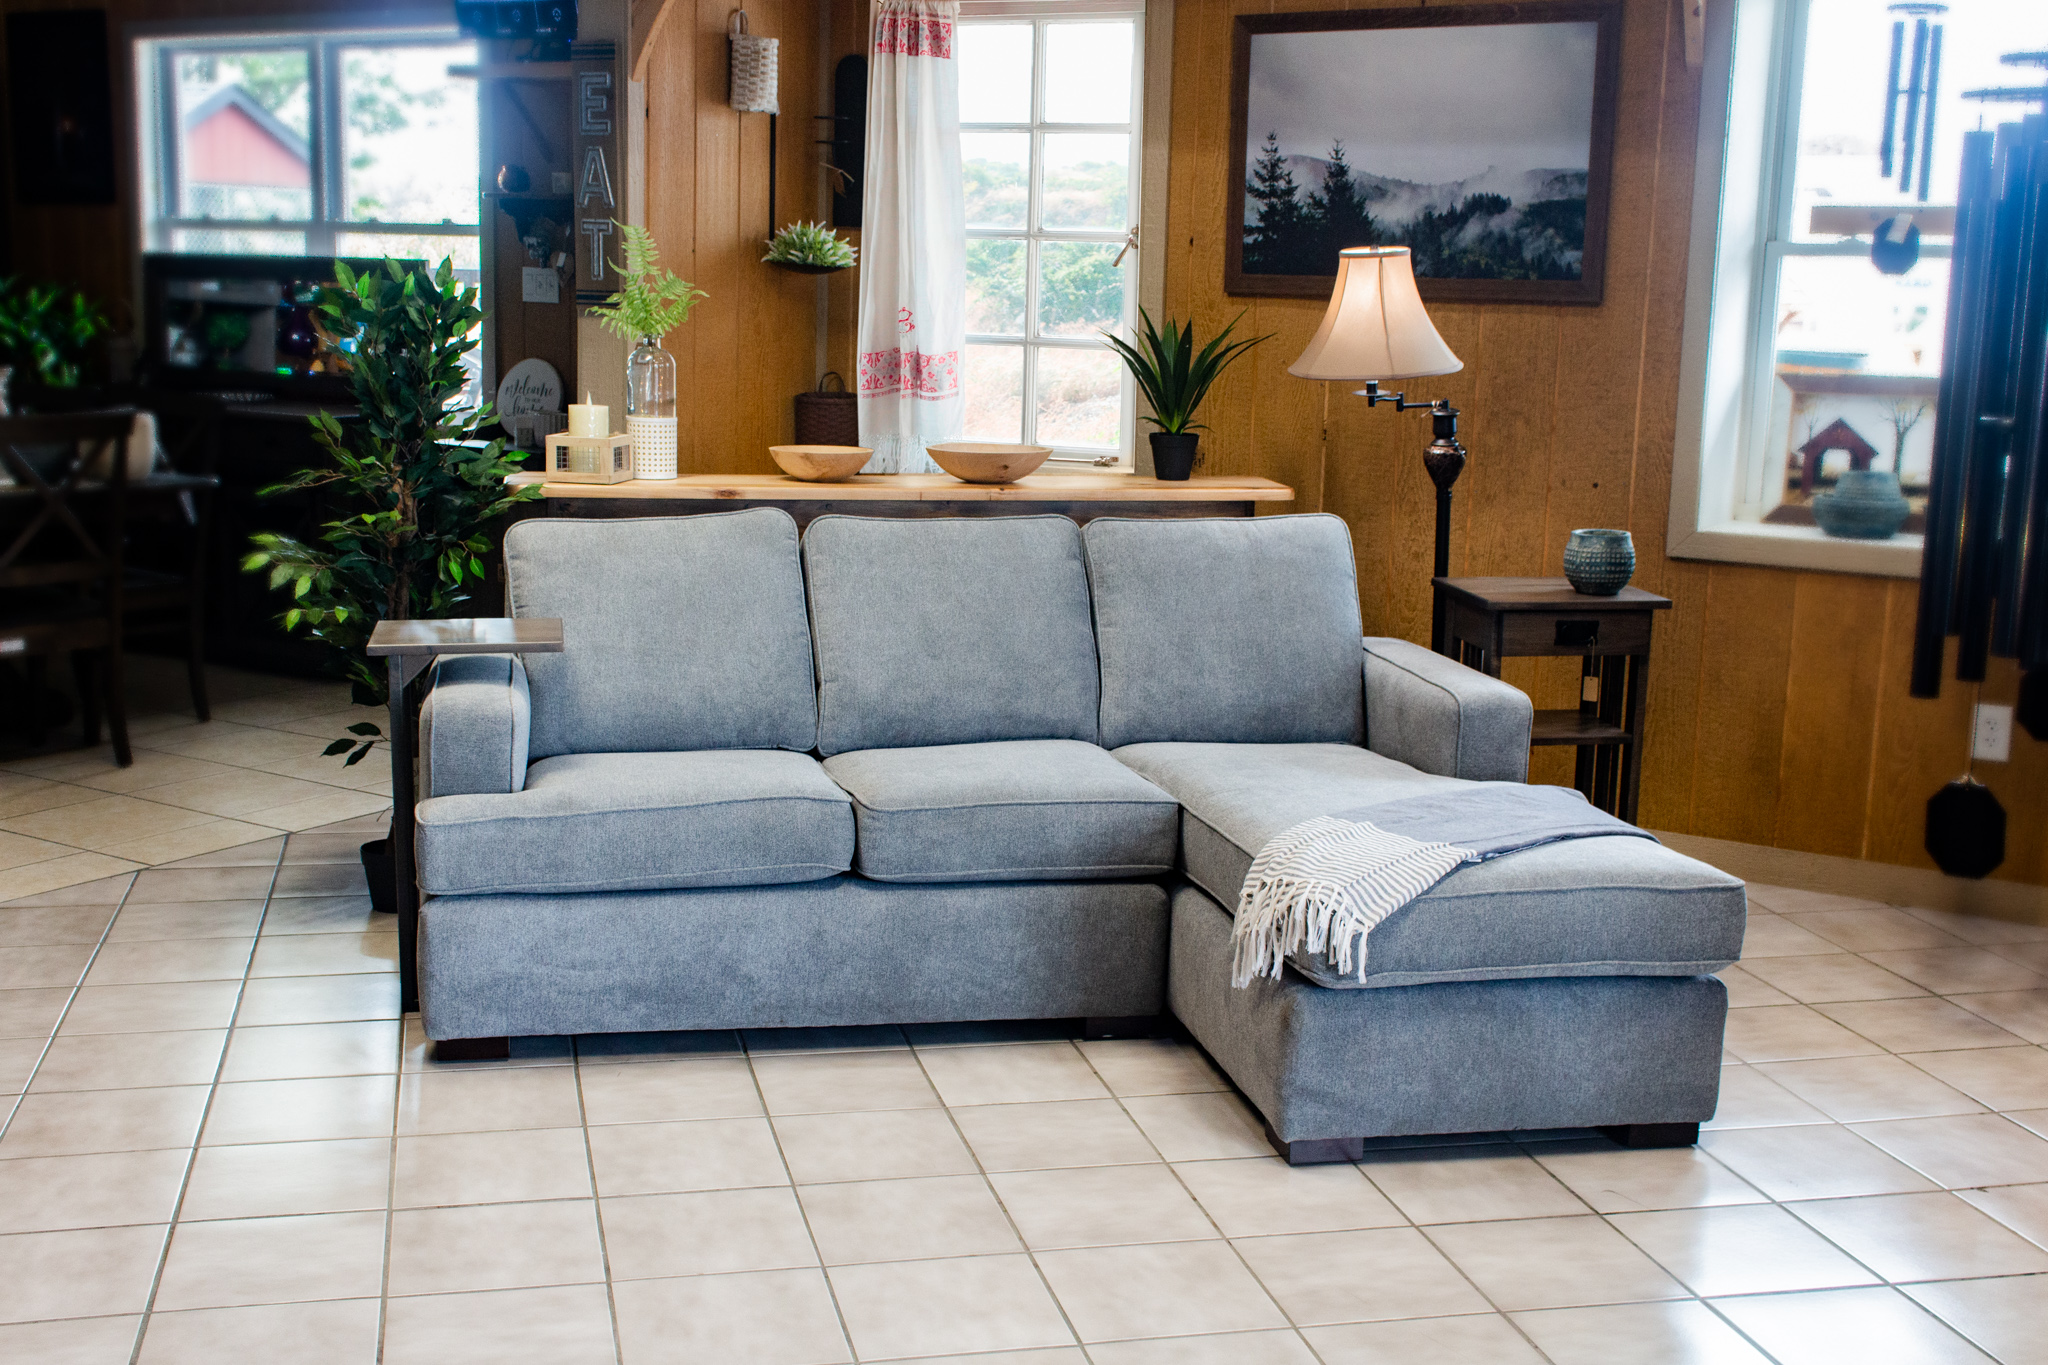 Home Furniture for your living room like desks, bookcases, entertainment centers, hall tree, deacon bench, coffee table, end table, sofa table, shoe bench, Trash Bin, Laundry cabinet, hall cabinet, wine hutch rockers, cheval mirrors and more